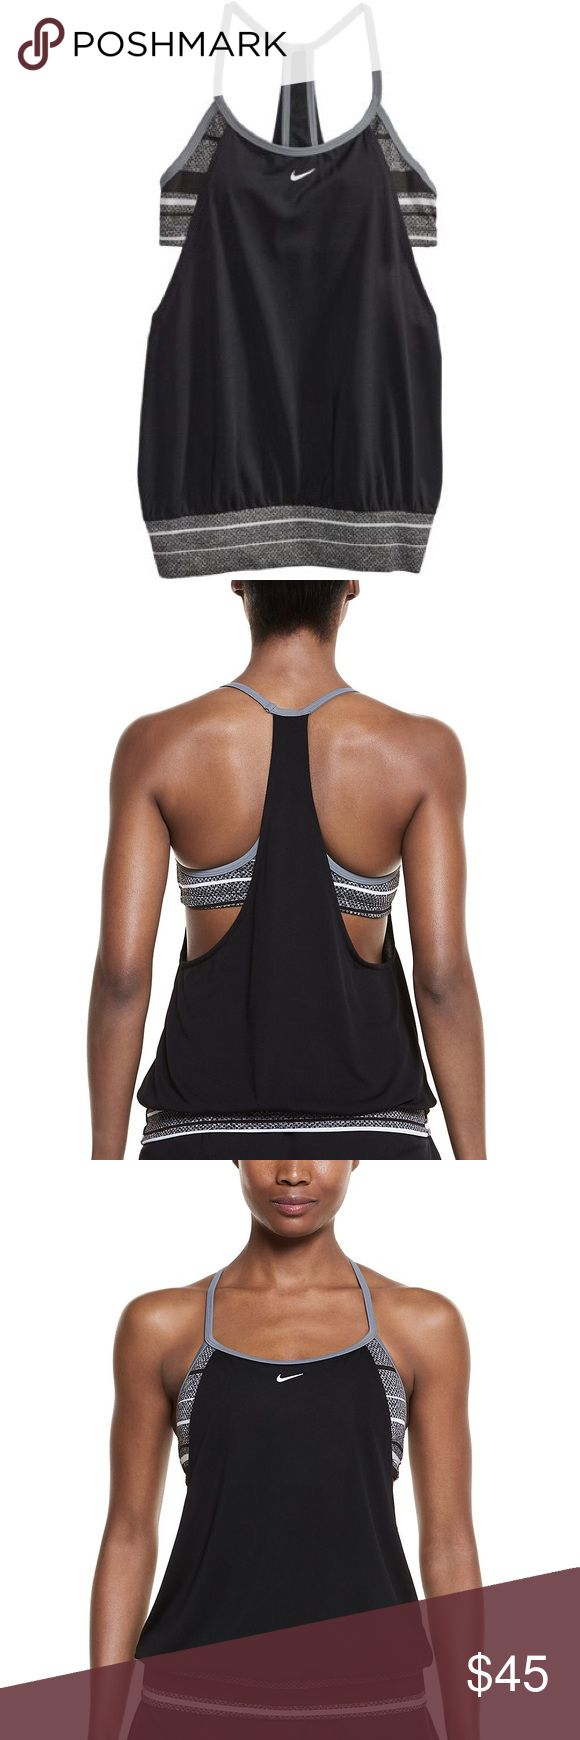 NWT Women's Nike Filtered Sport 2-In-1 Tankini Top Brand new with tags! Women's Nike 2 in 1 Swimsuit AND Tank Top with Built in Padded Sports Bra in size Medium. $ 64.99 plus shipping - deal for you! Product Details From the paddle board to the yoga mat, this women's 2-in-1 tankini top from Nike is a hot-weather essential. PRODUCT FEATURES Perfect for high-impact exercise 2-in-1 design features an attached bikini top underneath a tankini top Solid tankini, striped bikini Racerback FIT…